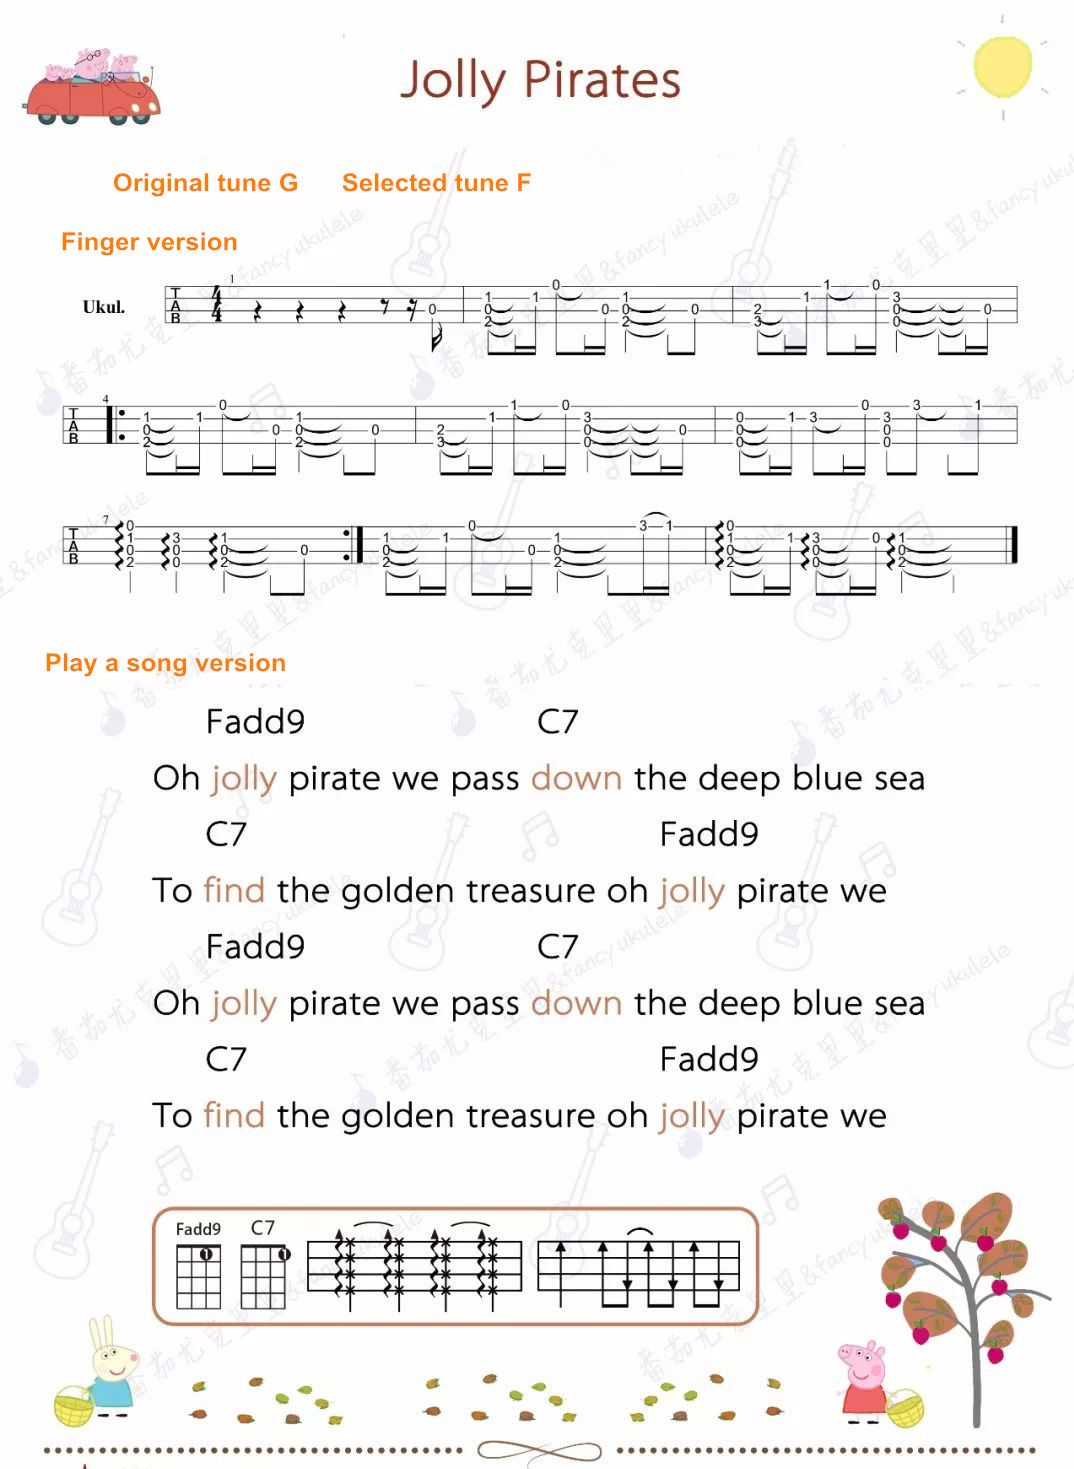 Peppa Pig Ukulele Sheet Jolly Pirates Peppa Pig Songs Pirate Songs Songs